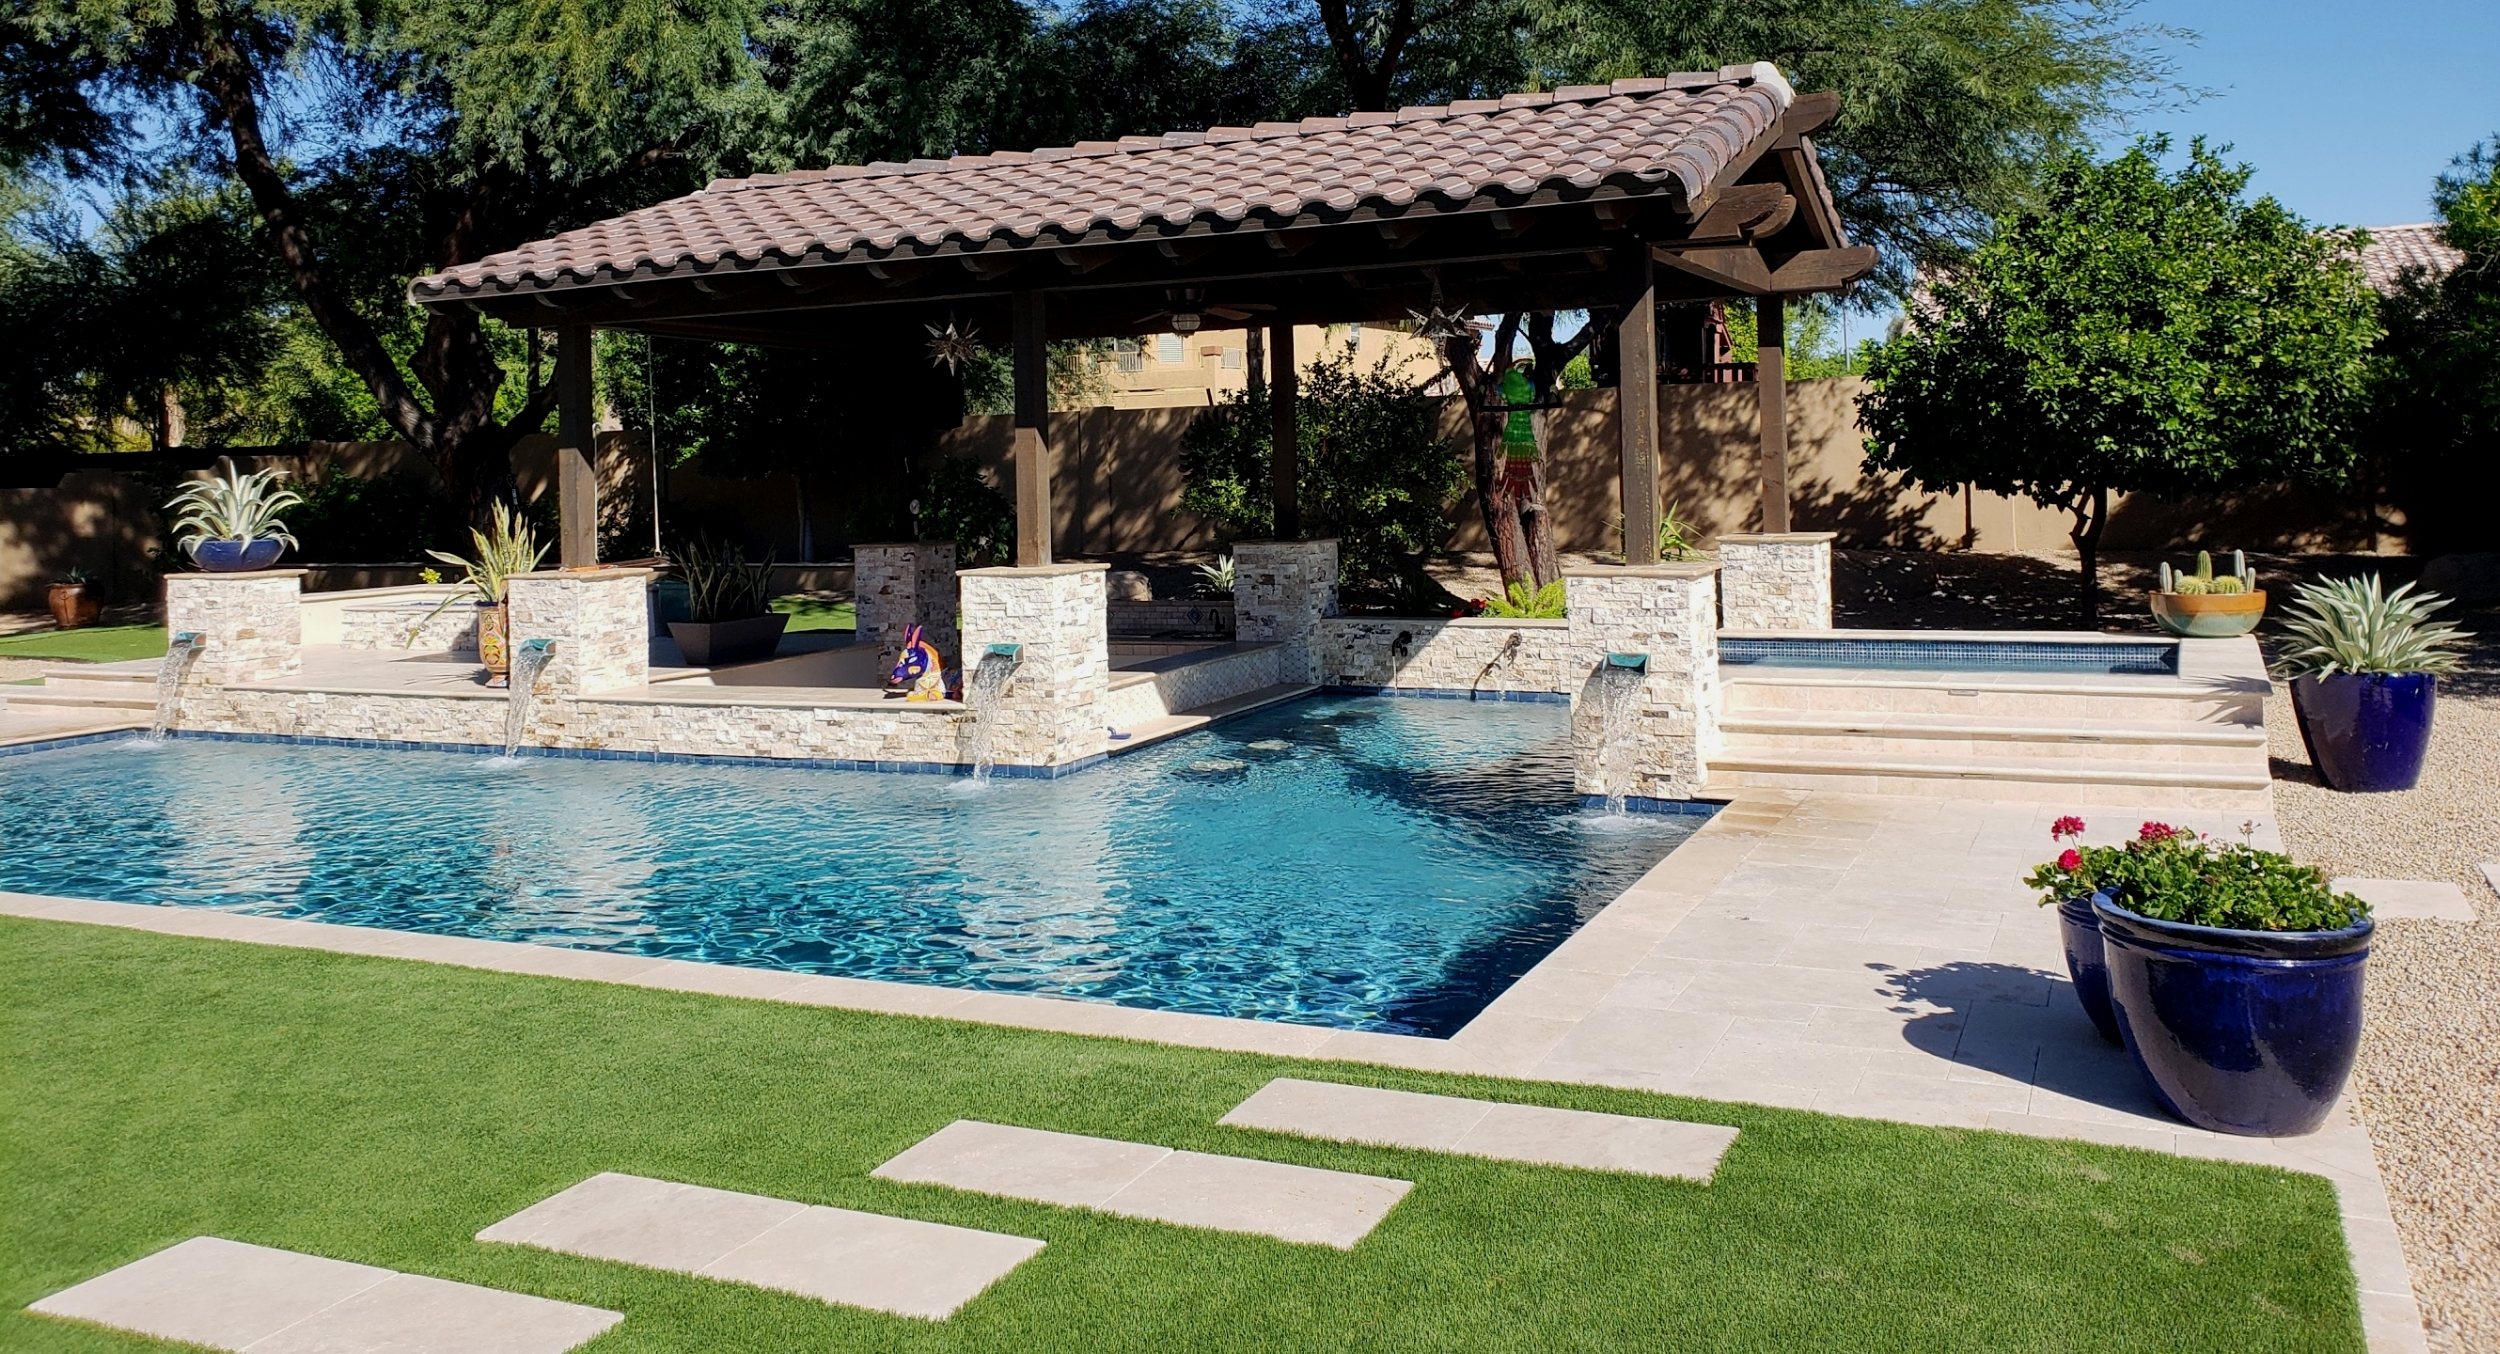 The pool is a huge player in your outdoor living space, Make it awesome with custom pool design. Peoria, AZ pool installation includes raised spa, swim bar, fountain wall and pillars, plus a timber ramada over the bar and underwater seating.